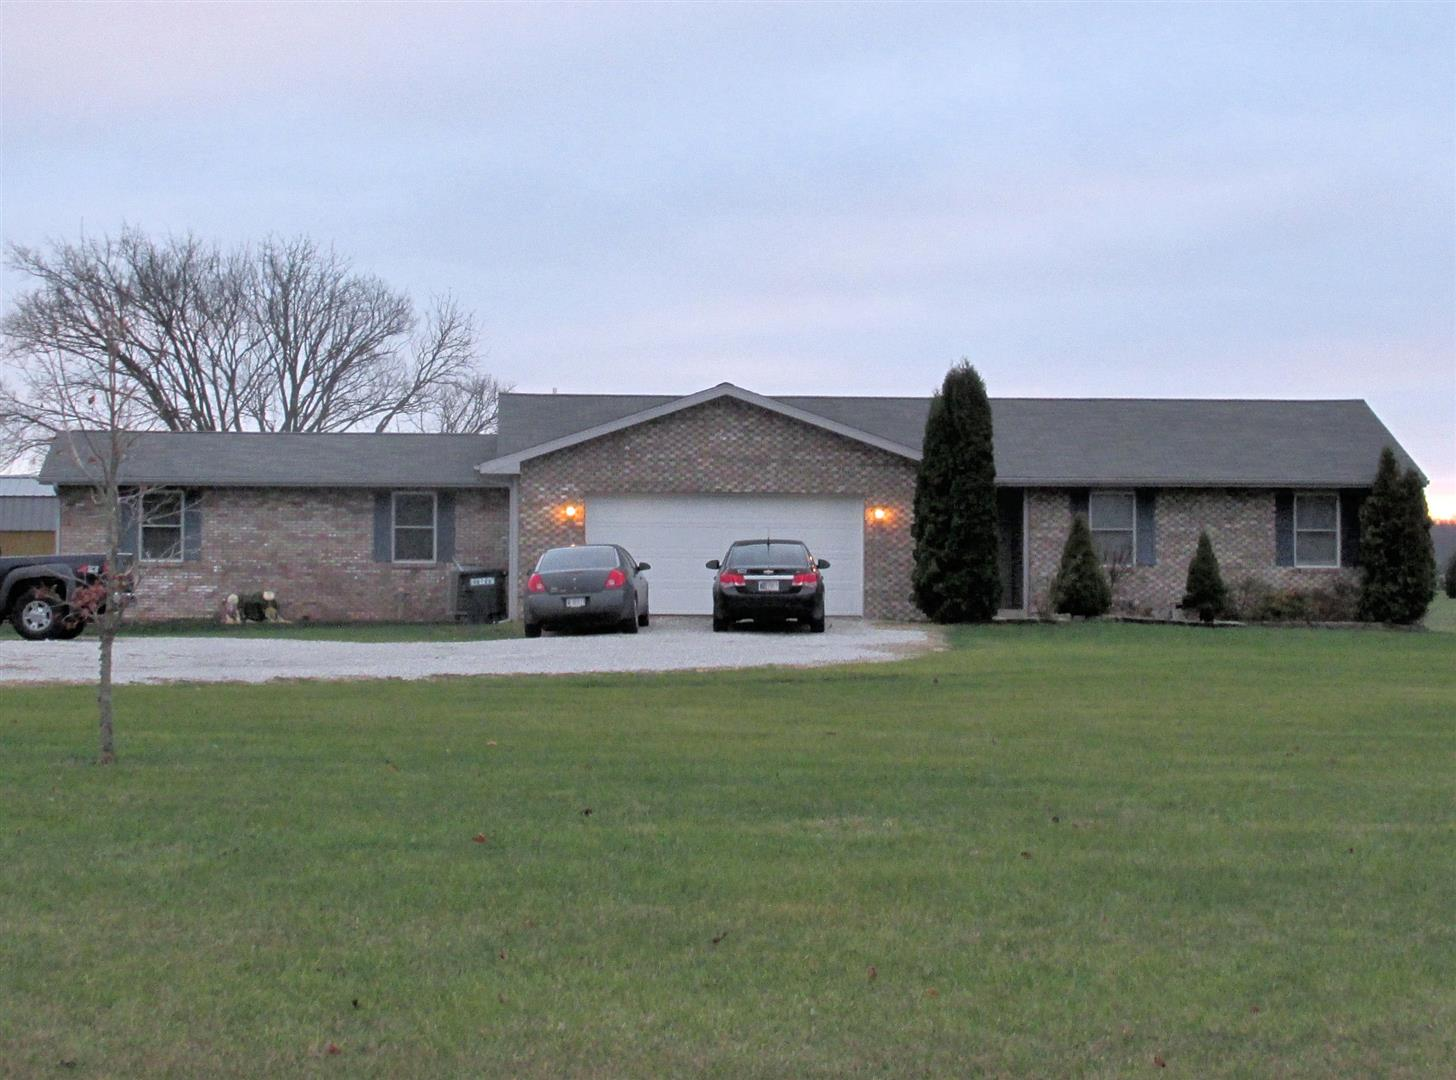 4905 W County Rd 1100 N, Dupont, Indiana 47231